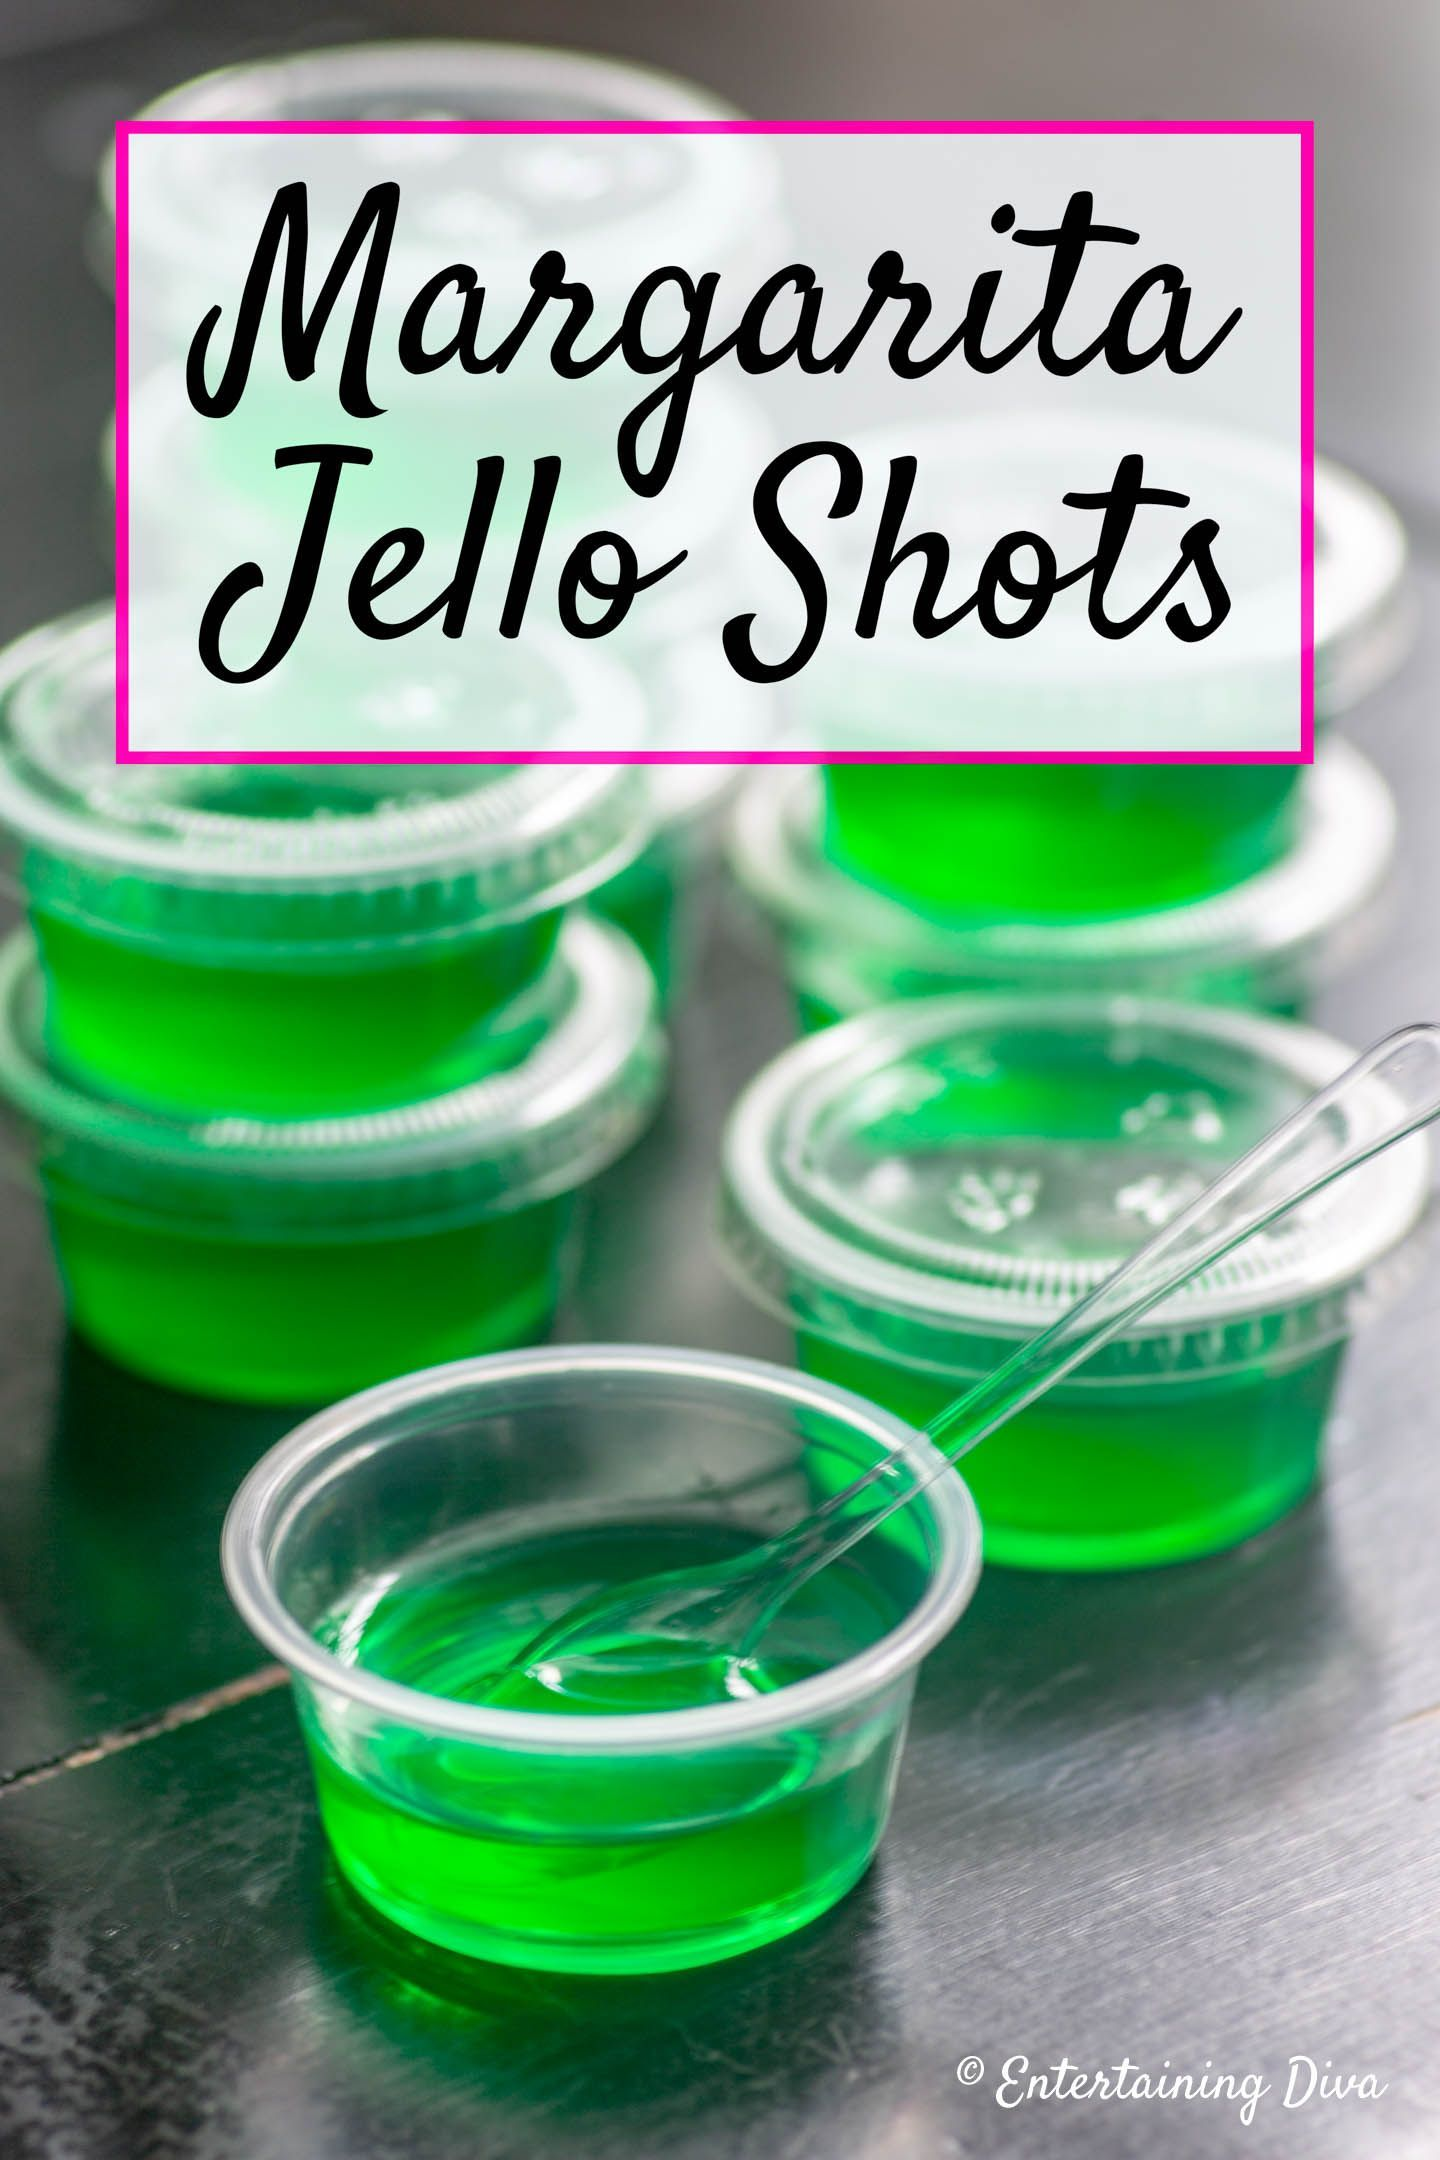 Margarita Jello Shots Recipe (Made With Tequila) - Entertaining Diva Recipes @ From House To Home